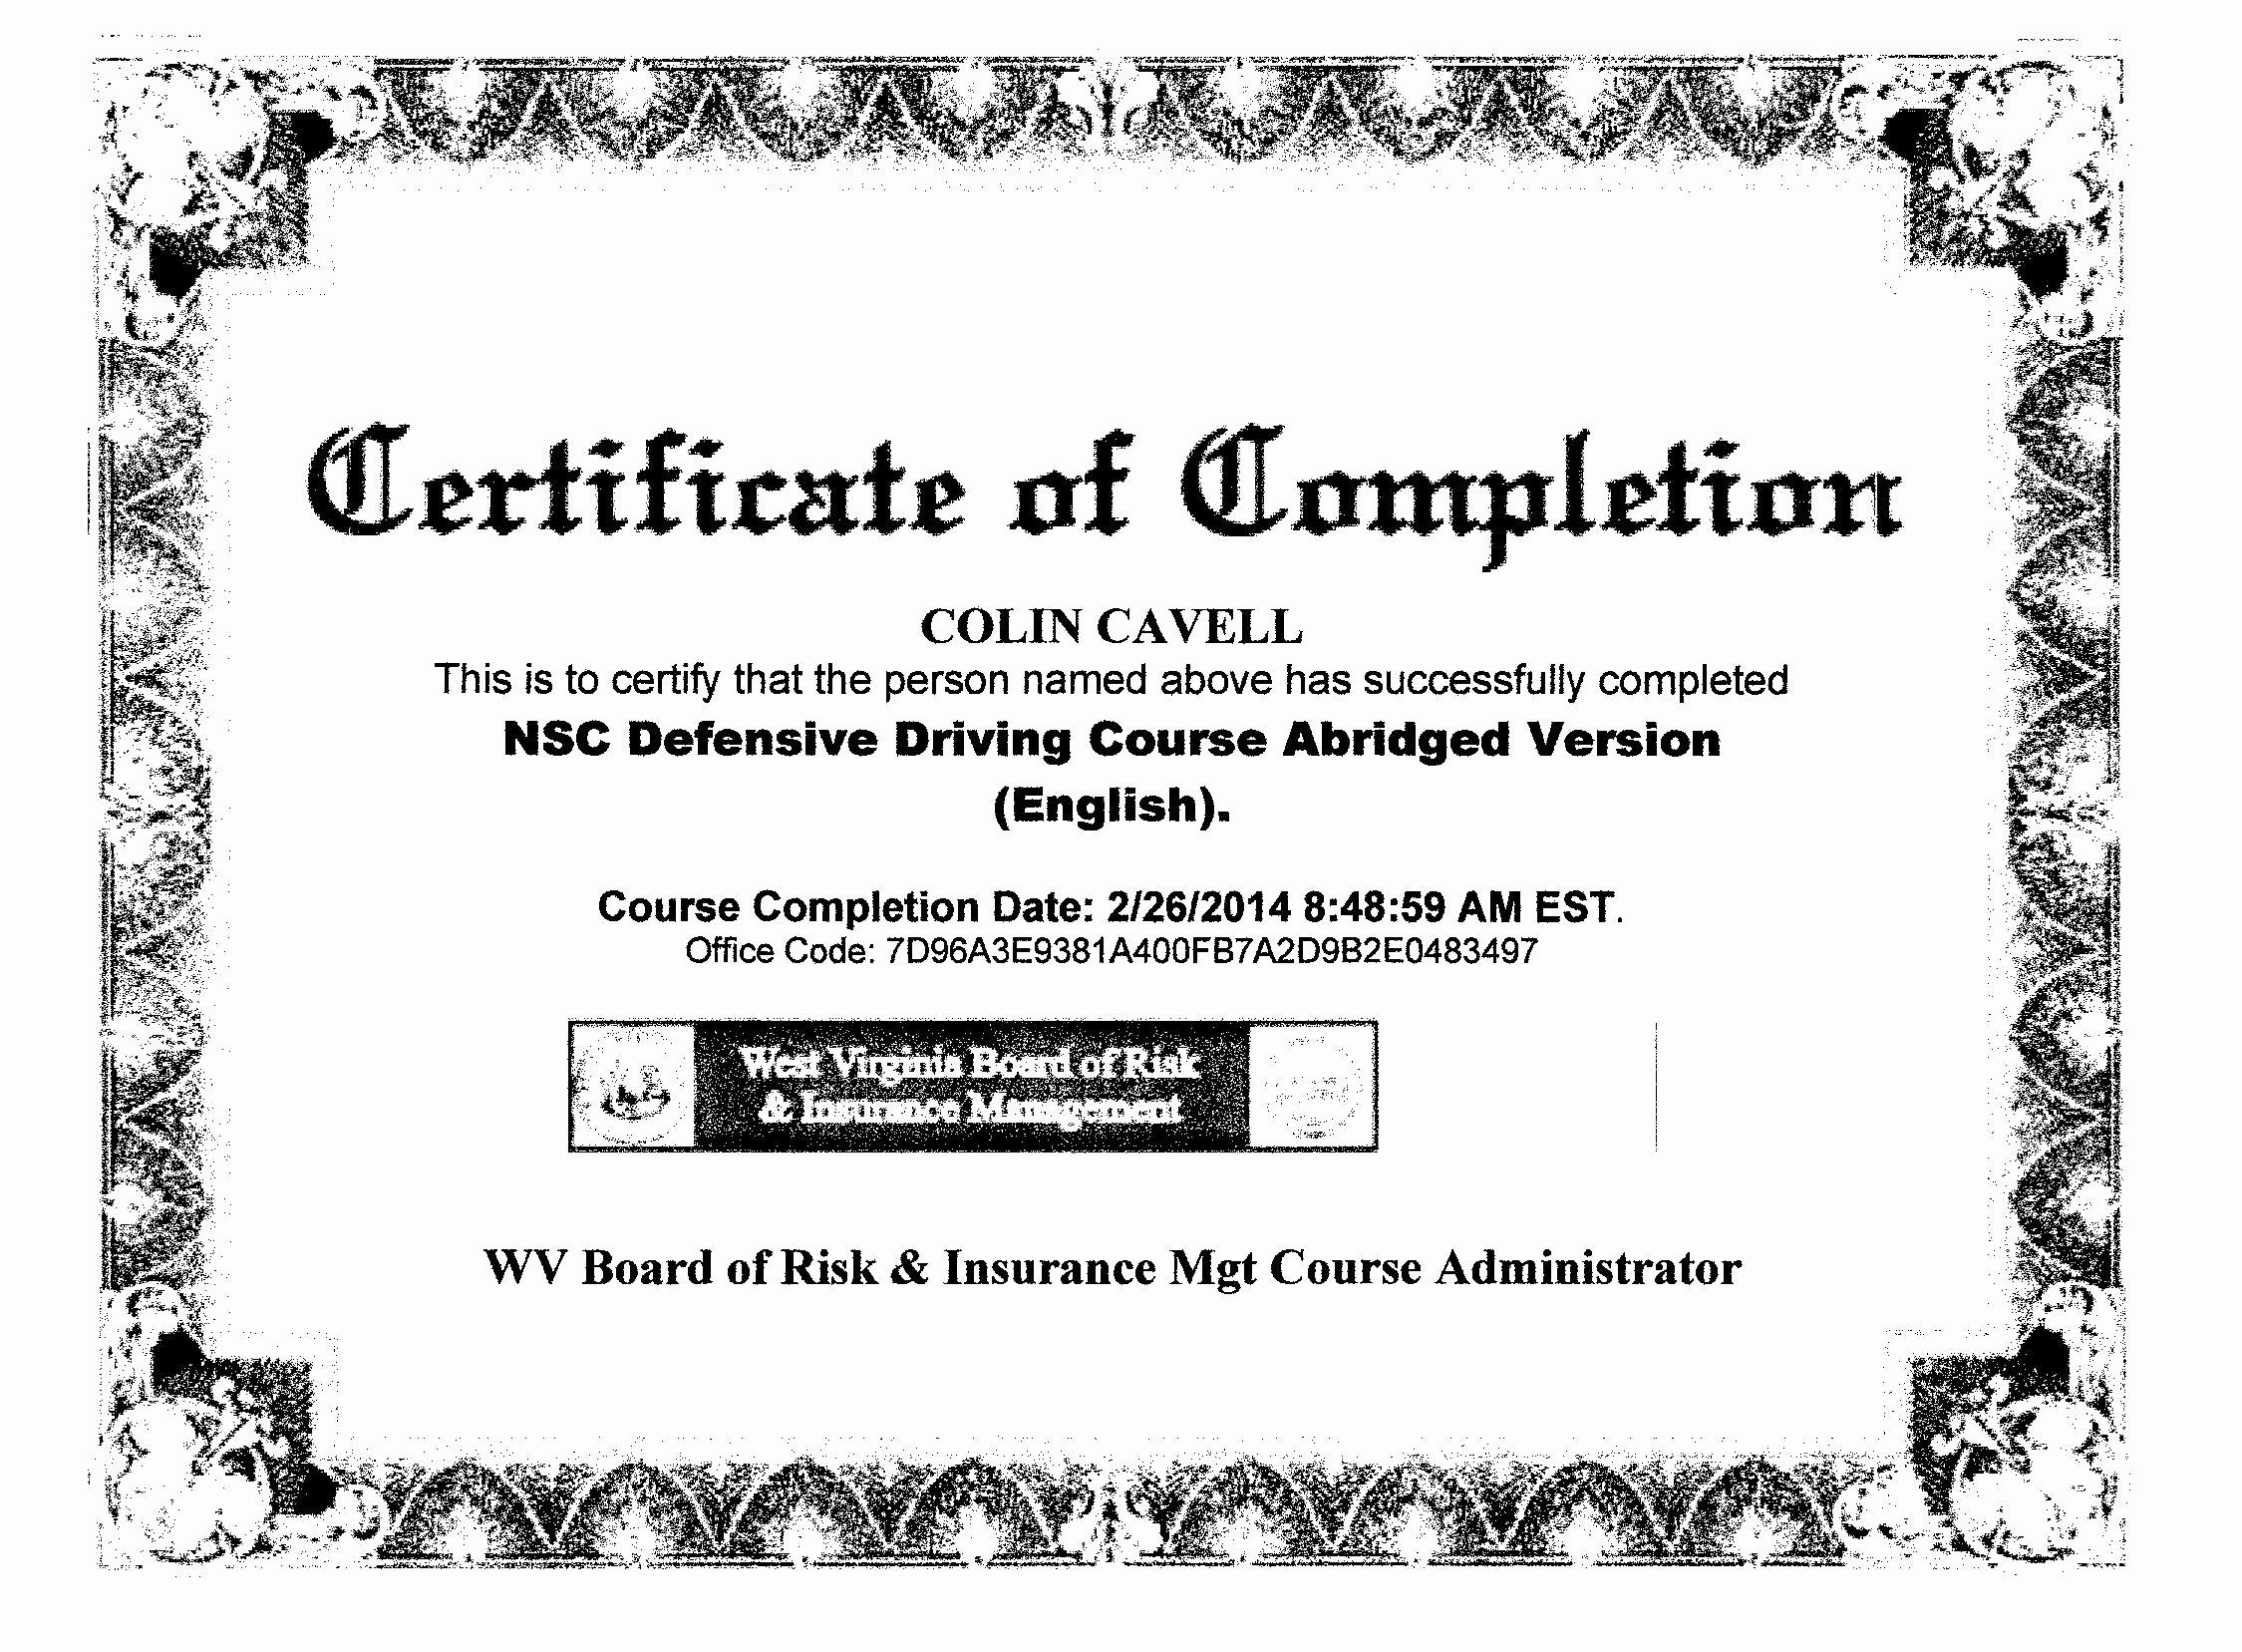 30 Defensive Driving Certificate Template | Pryncepality In Safe Driving Certificate Template